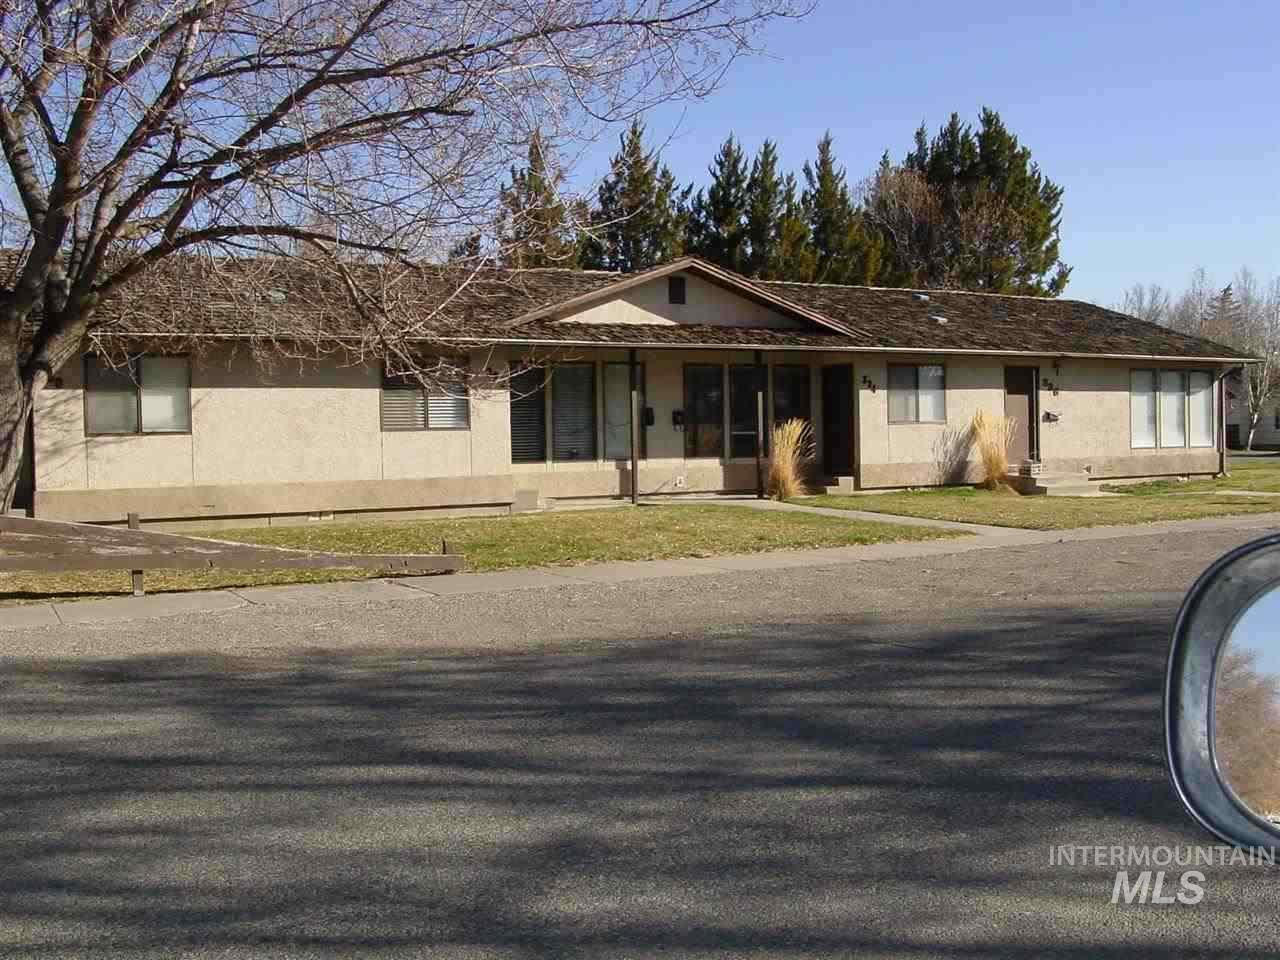 Multi-Family Home for Sale at 330 10th Ave East Gooding, Idaho 83330